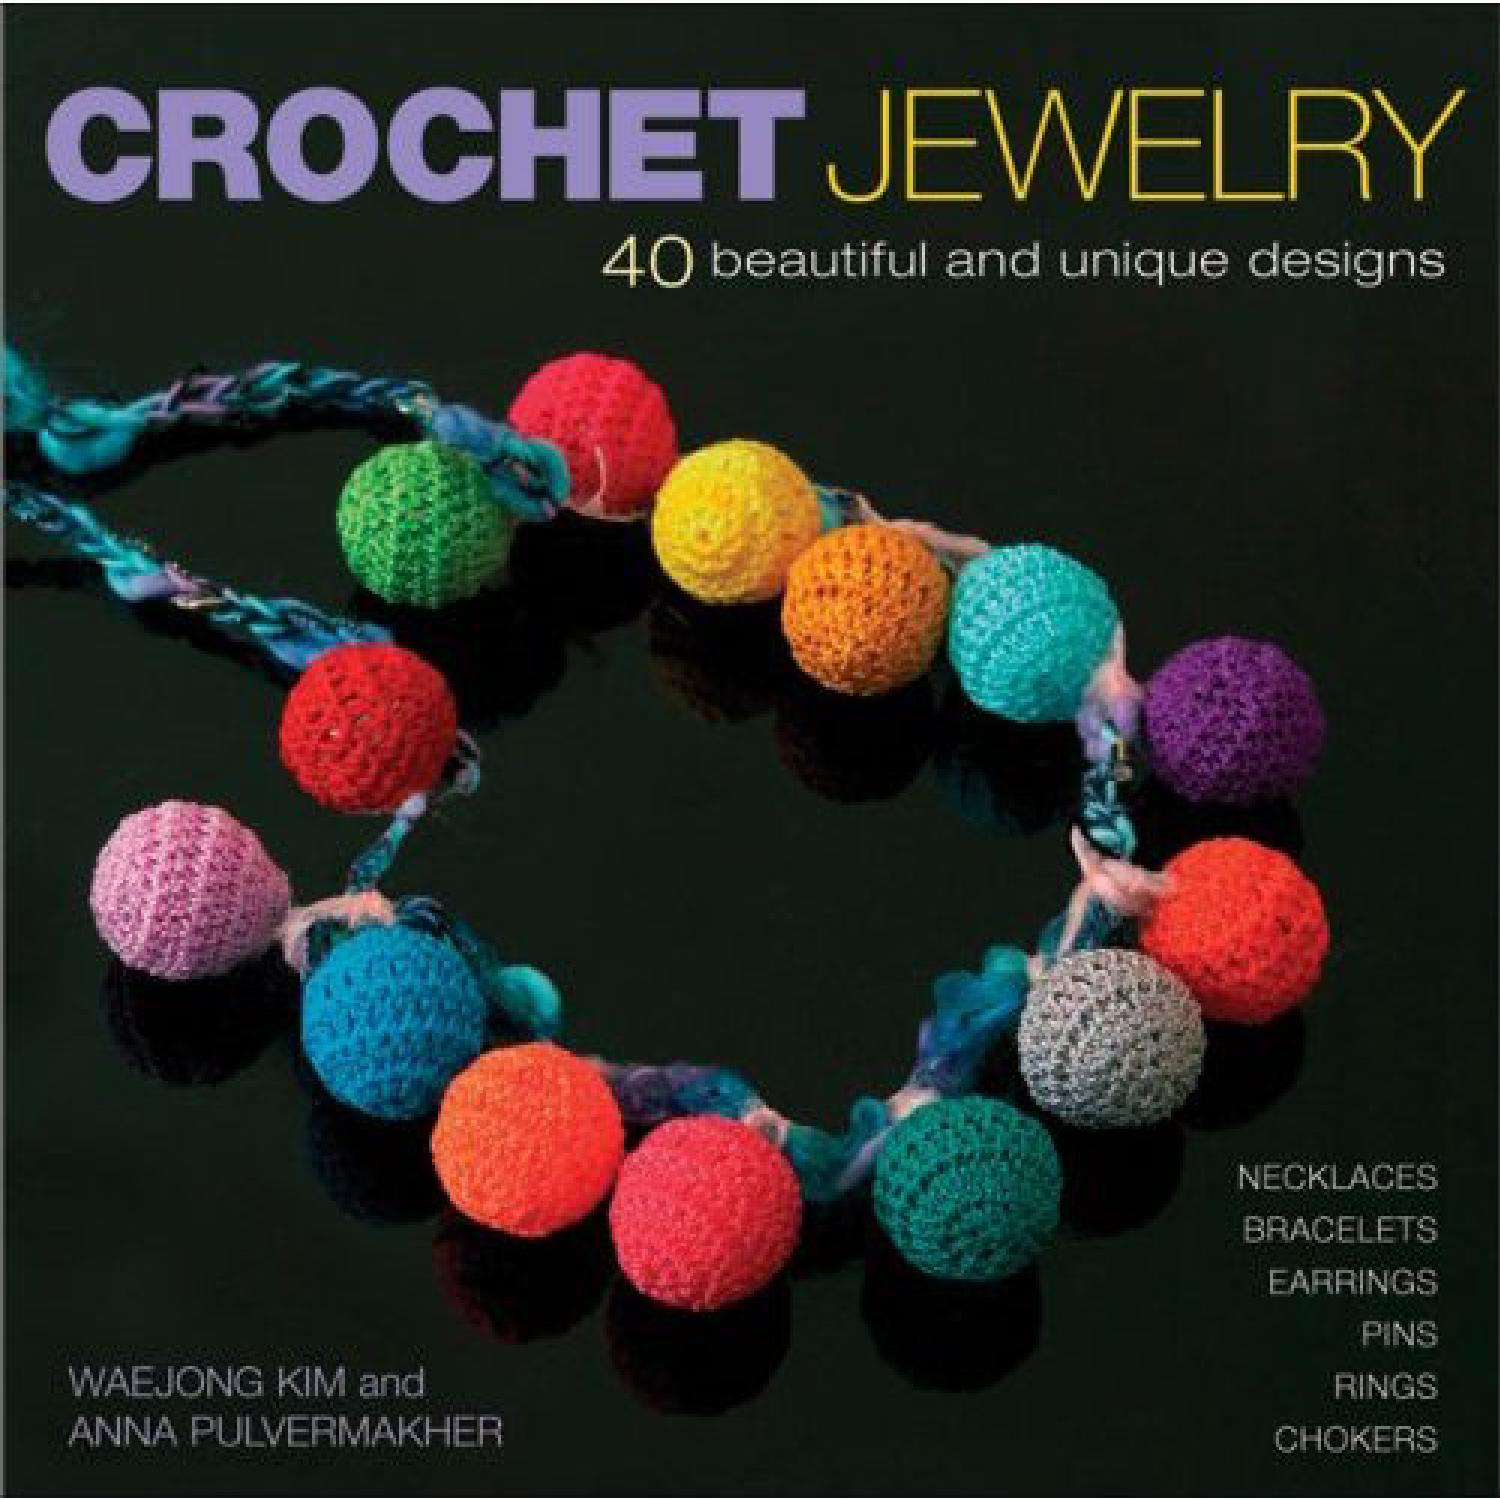 Knitting With Beads Book : Issuu crochet jewelry by darling gabella